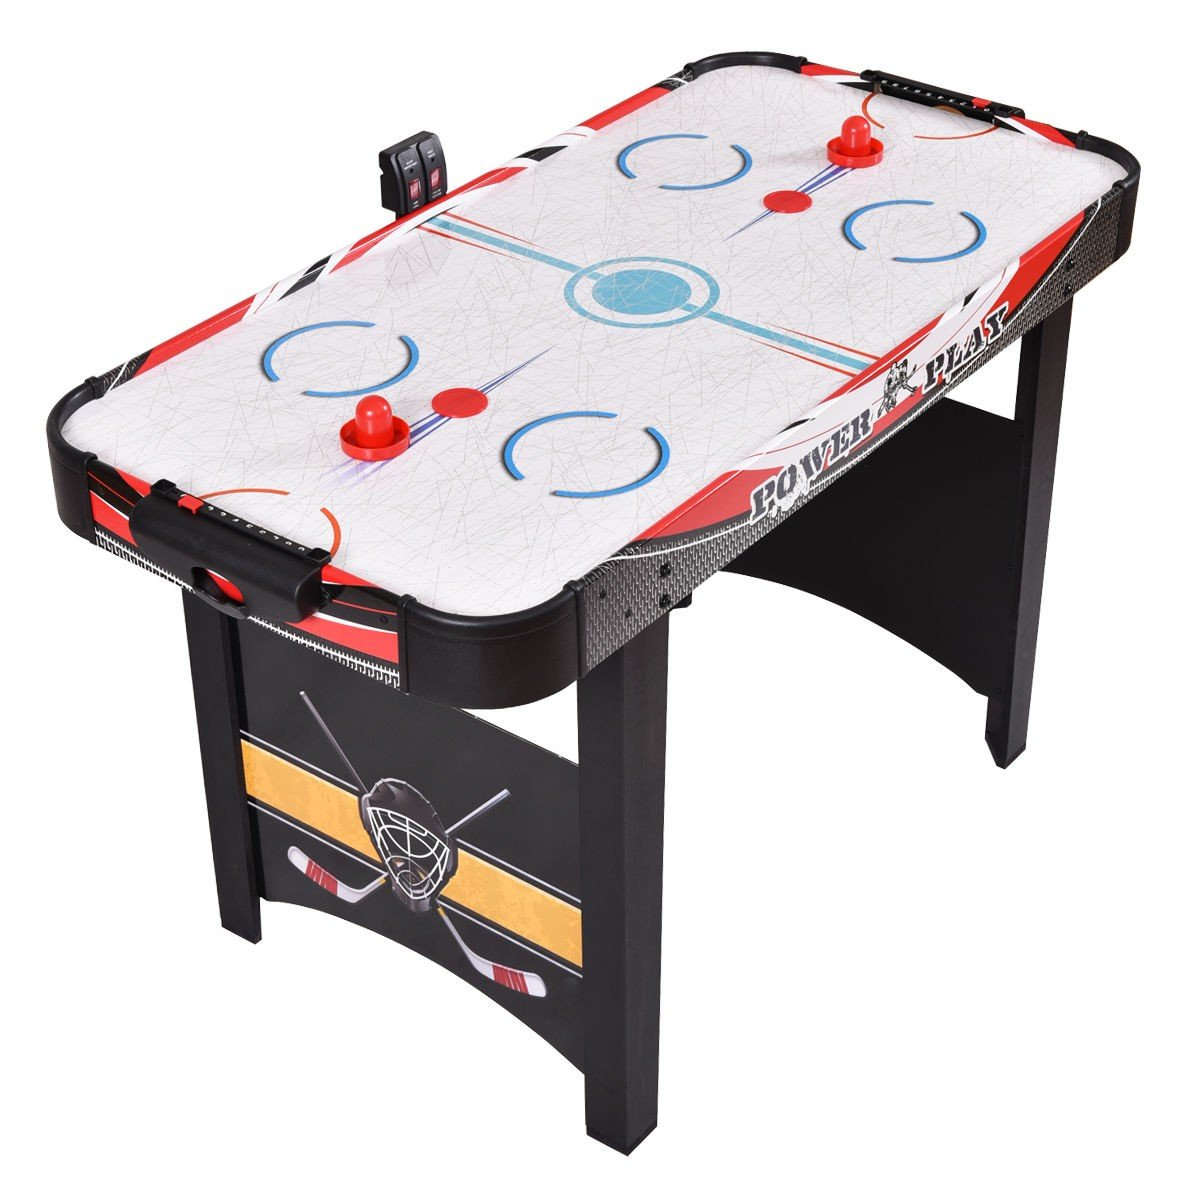 48'' Indoor Air Powered Hockey Table by Abbeydh